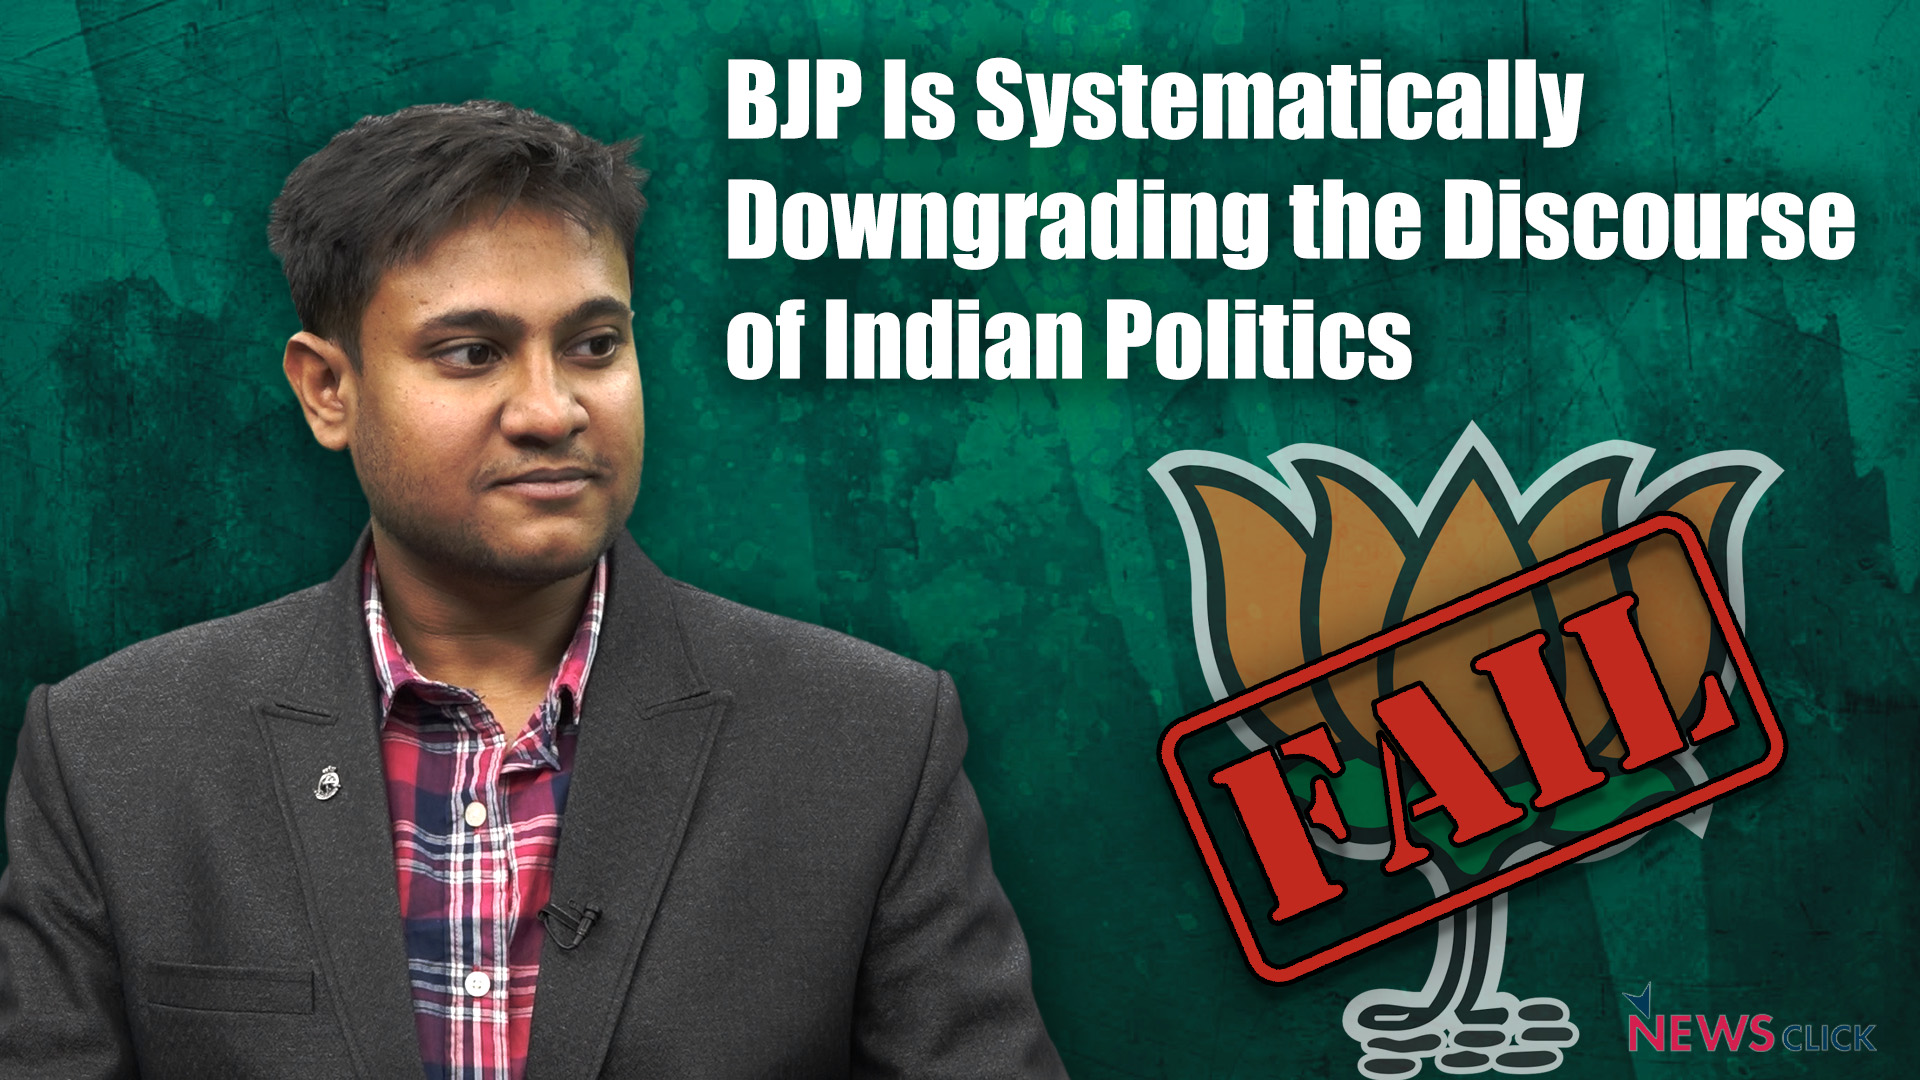 BJP Is Systematically Downgrading the Discourse of Indian Politics